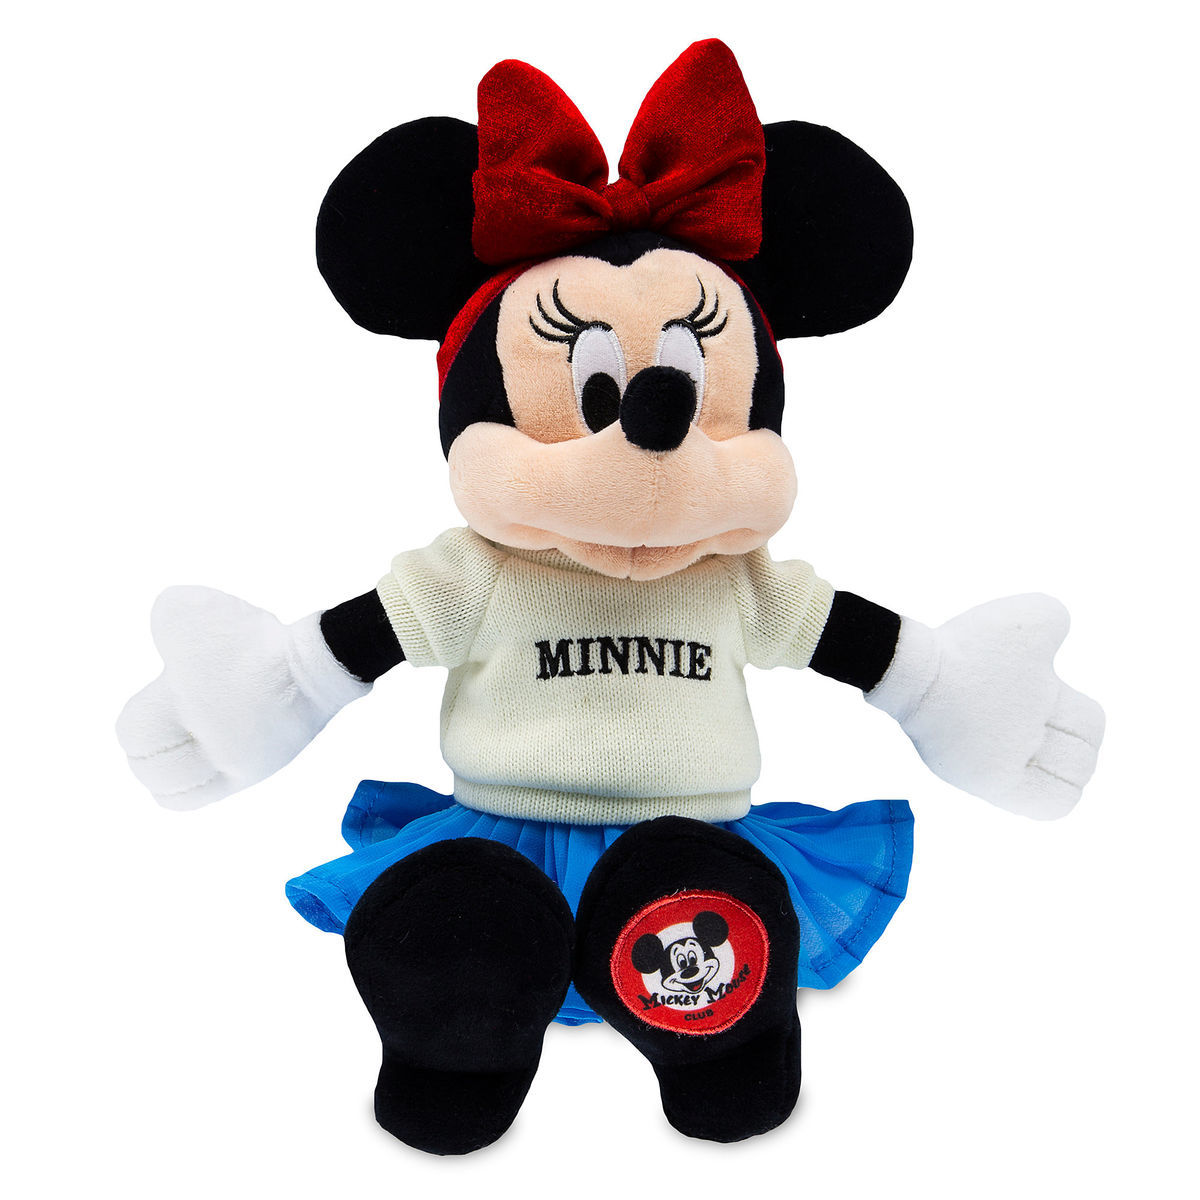 Disney Minnie Plush - The Mickey Mouse Club - 11''